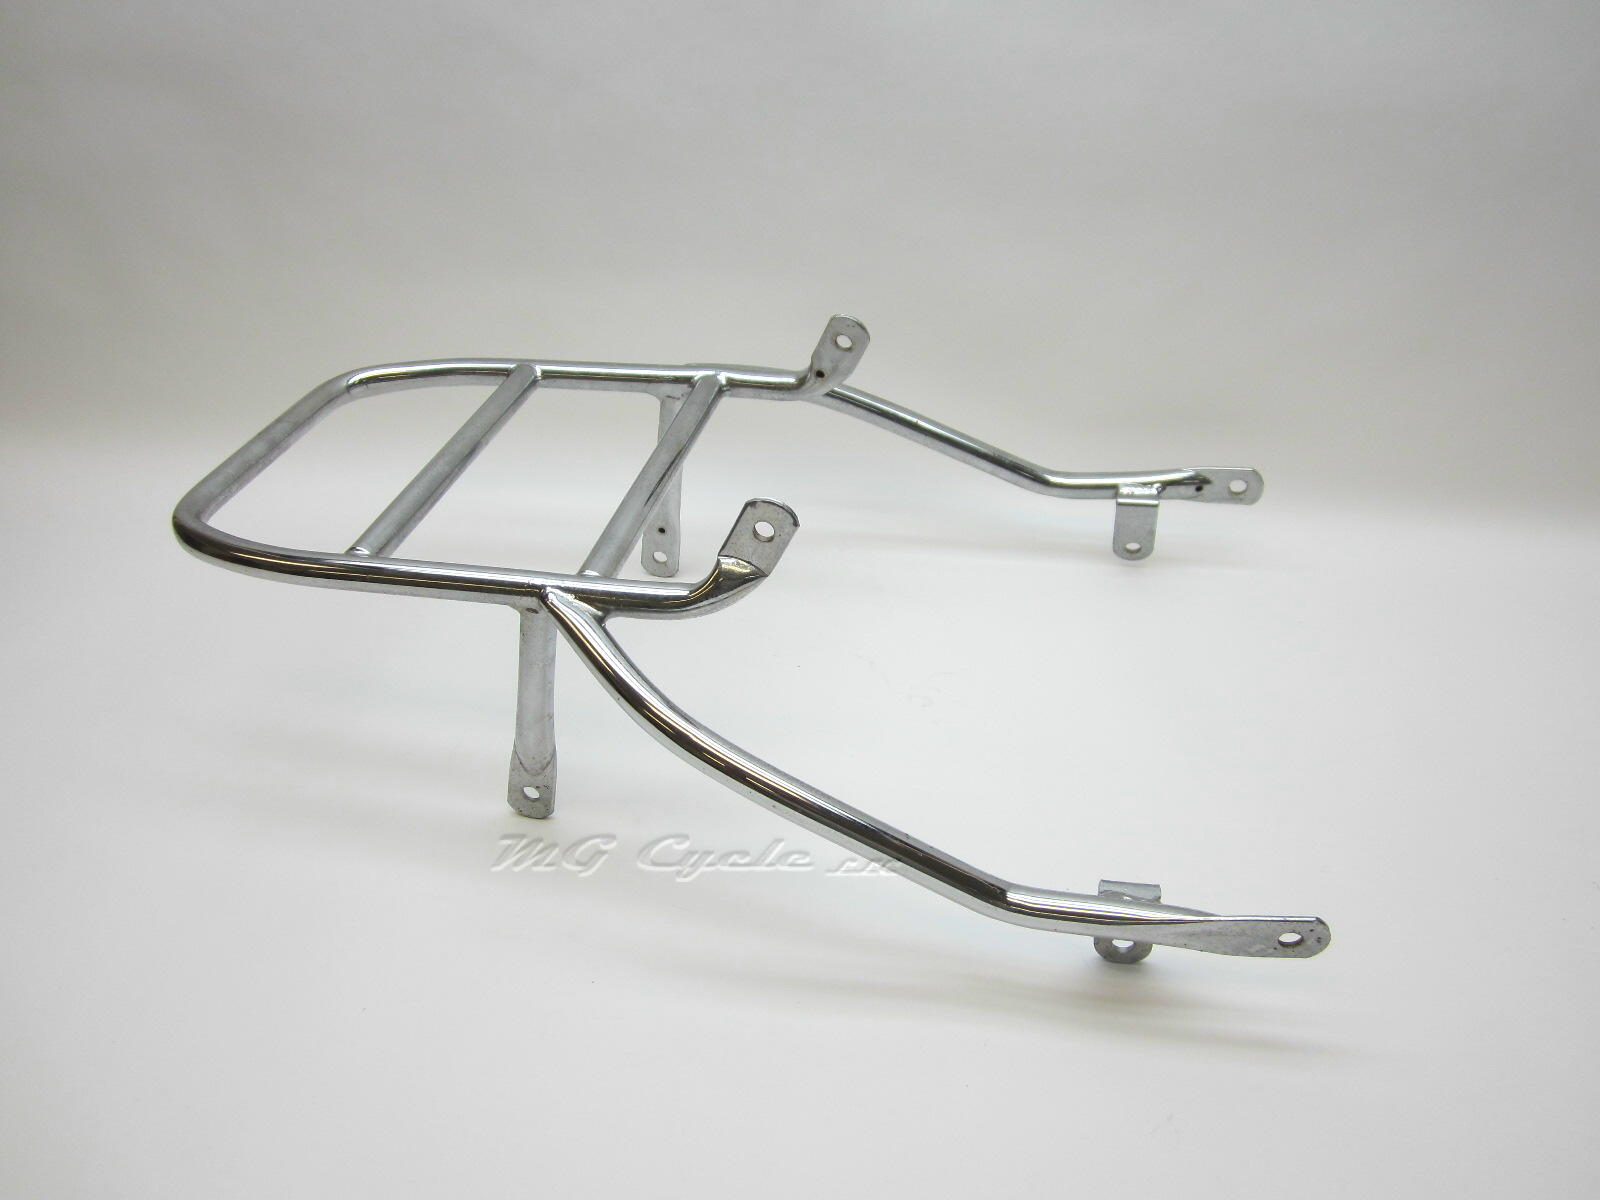 Luggage rack for T3 California seat